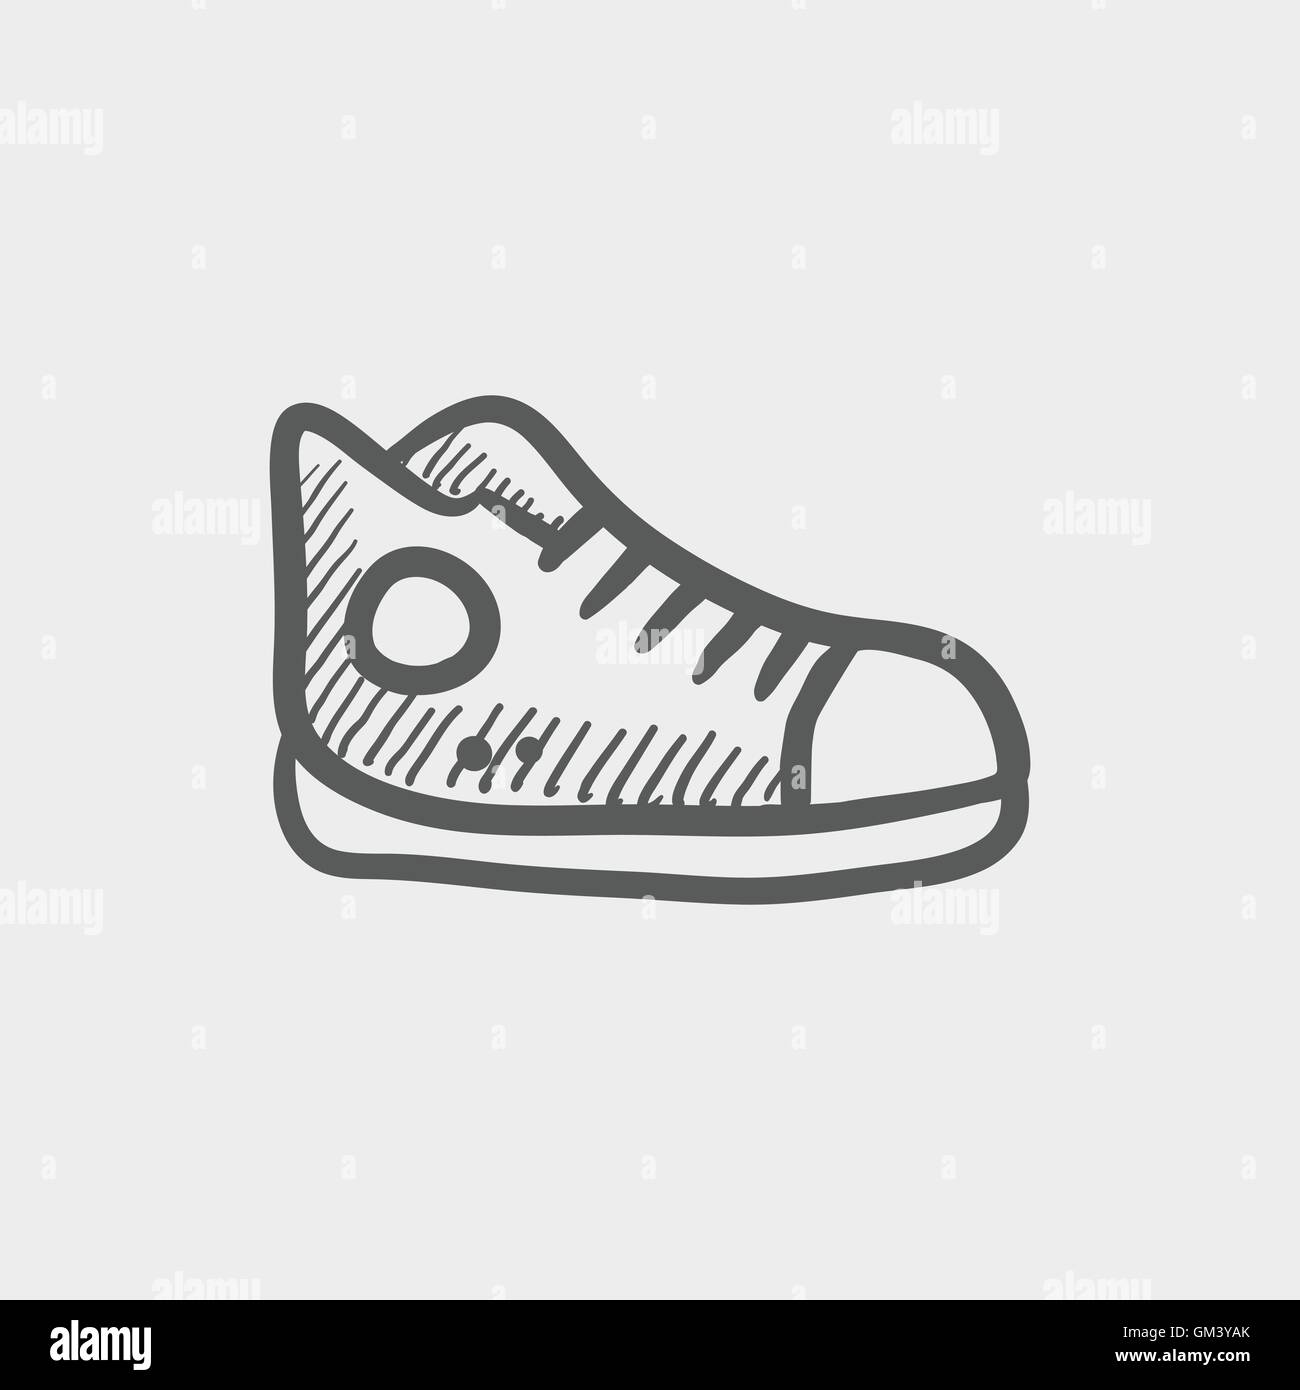 Hi-cut rubber shoes sketch icon - Stock Image